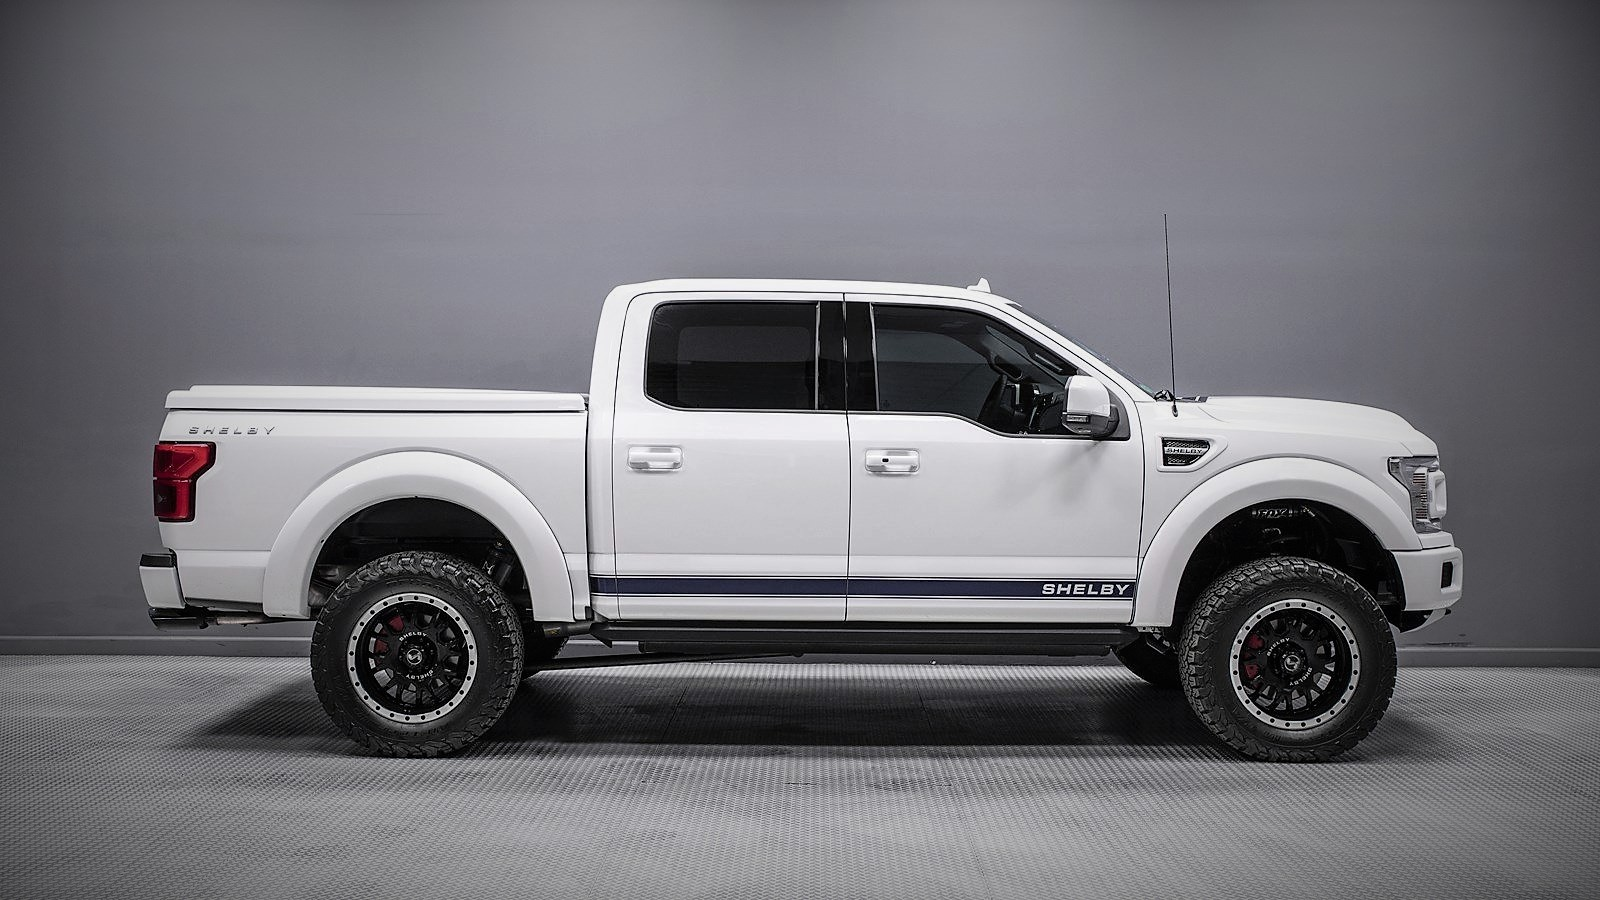 FORD F150 Shelby v8 5.0l supercharged 755hp bva10